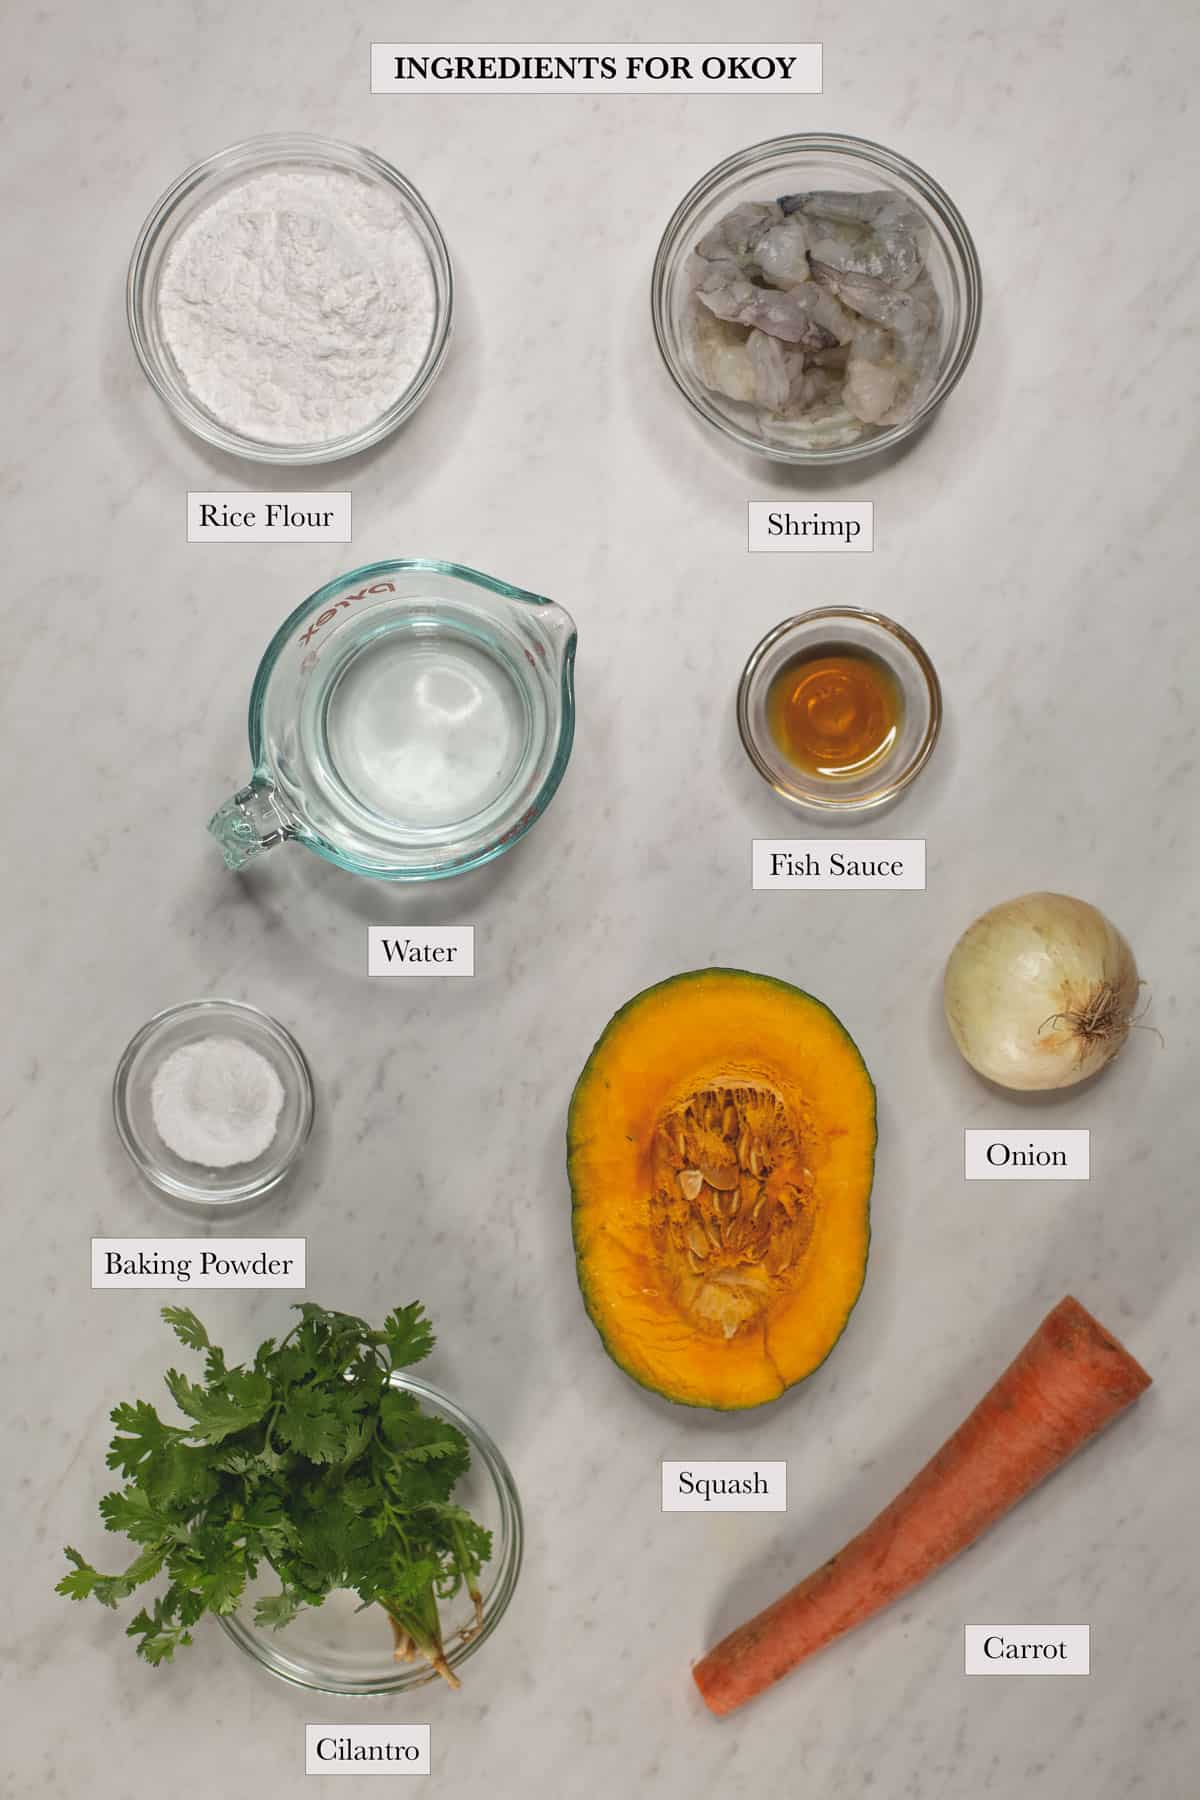 Ingredients for okoy include rice flour, shrimp, water, fish sauce, baking powder, squash, onion, cilantro, and carrot.